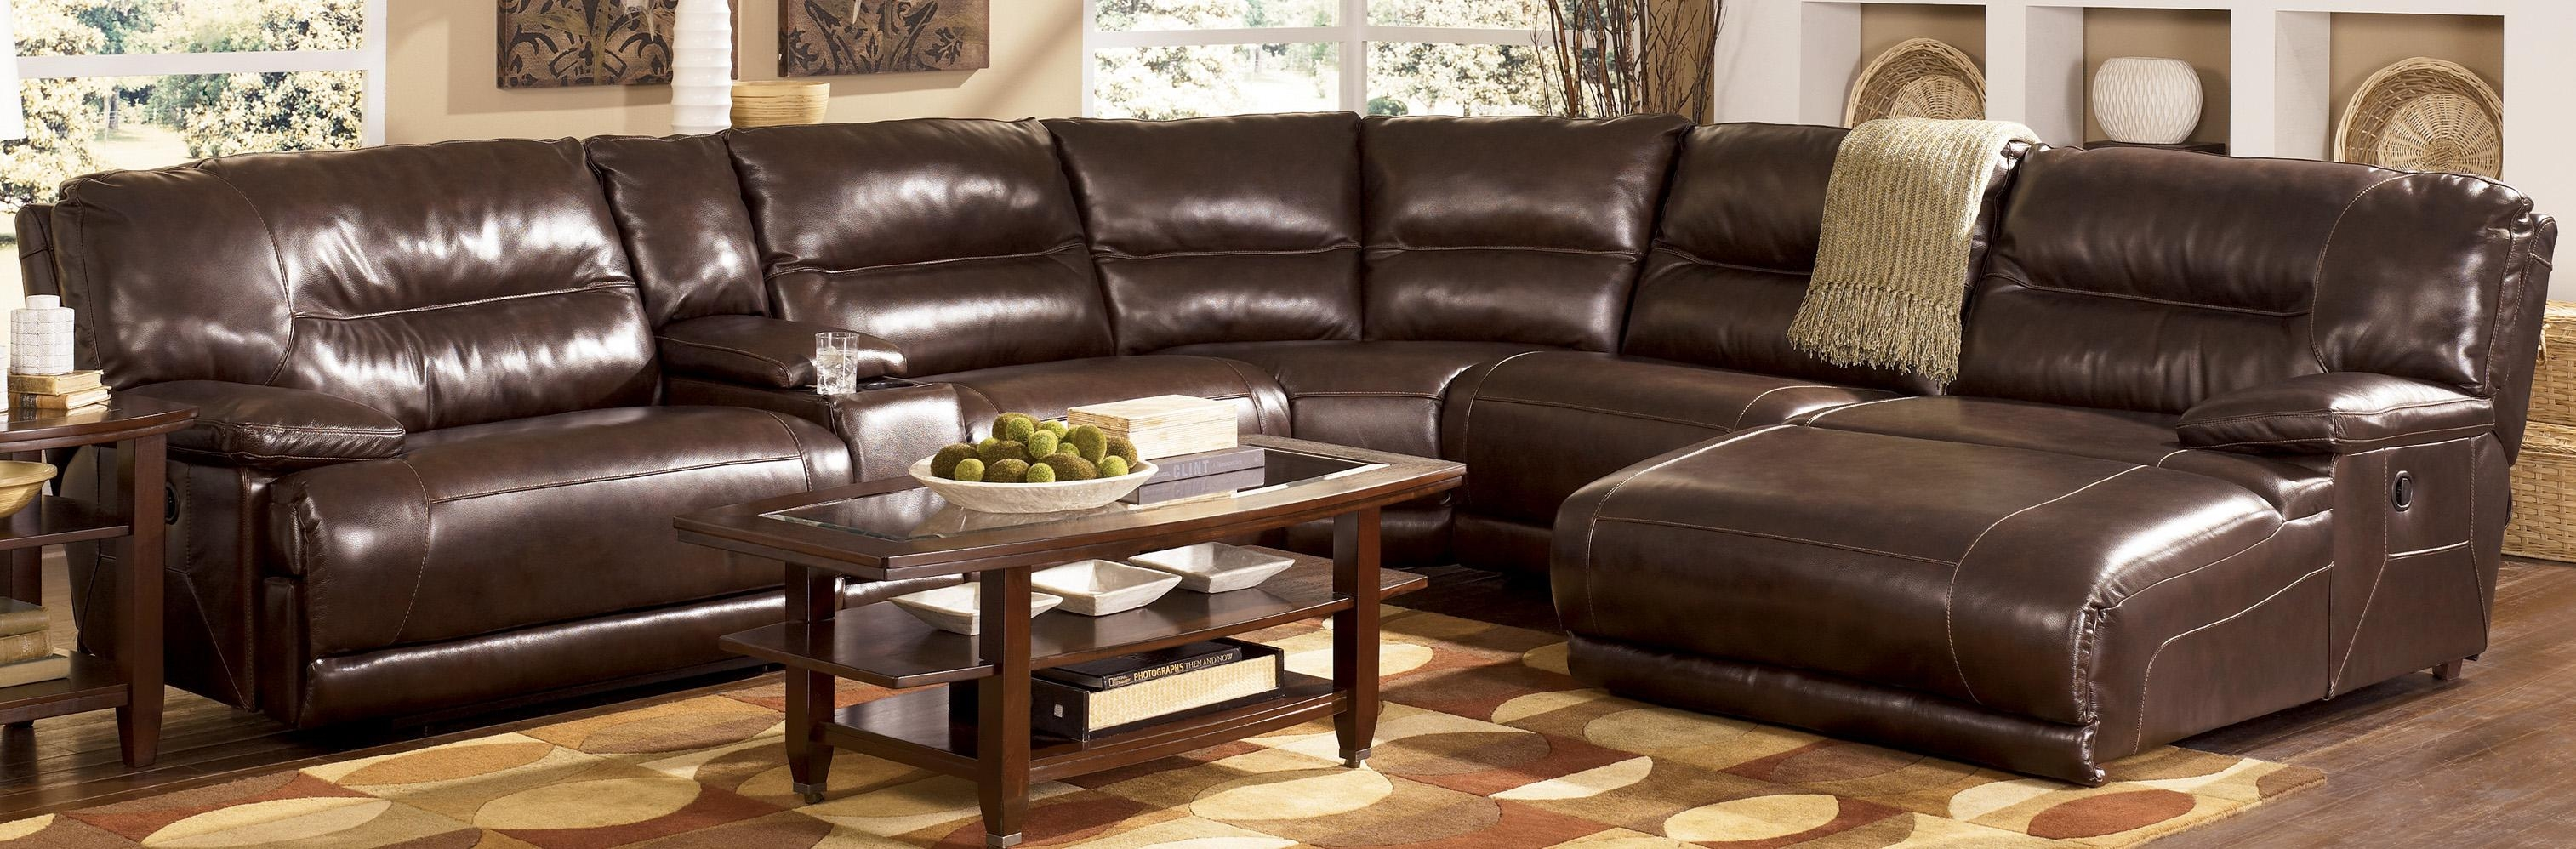 Chair & Sofa: Have An Interesting Living Room With Ashley Within Faux Leather Sectional Sofas (View 8 of 15)